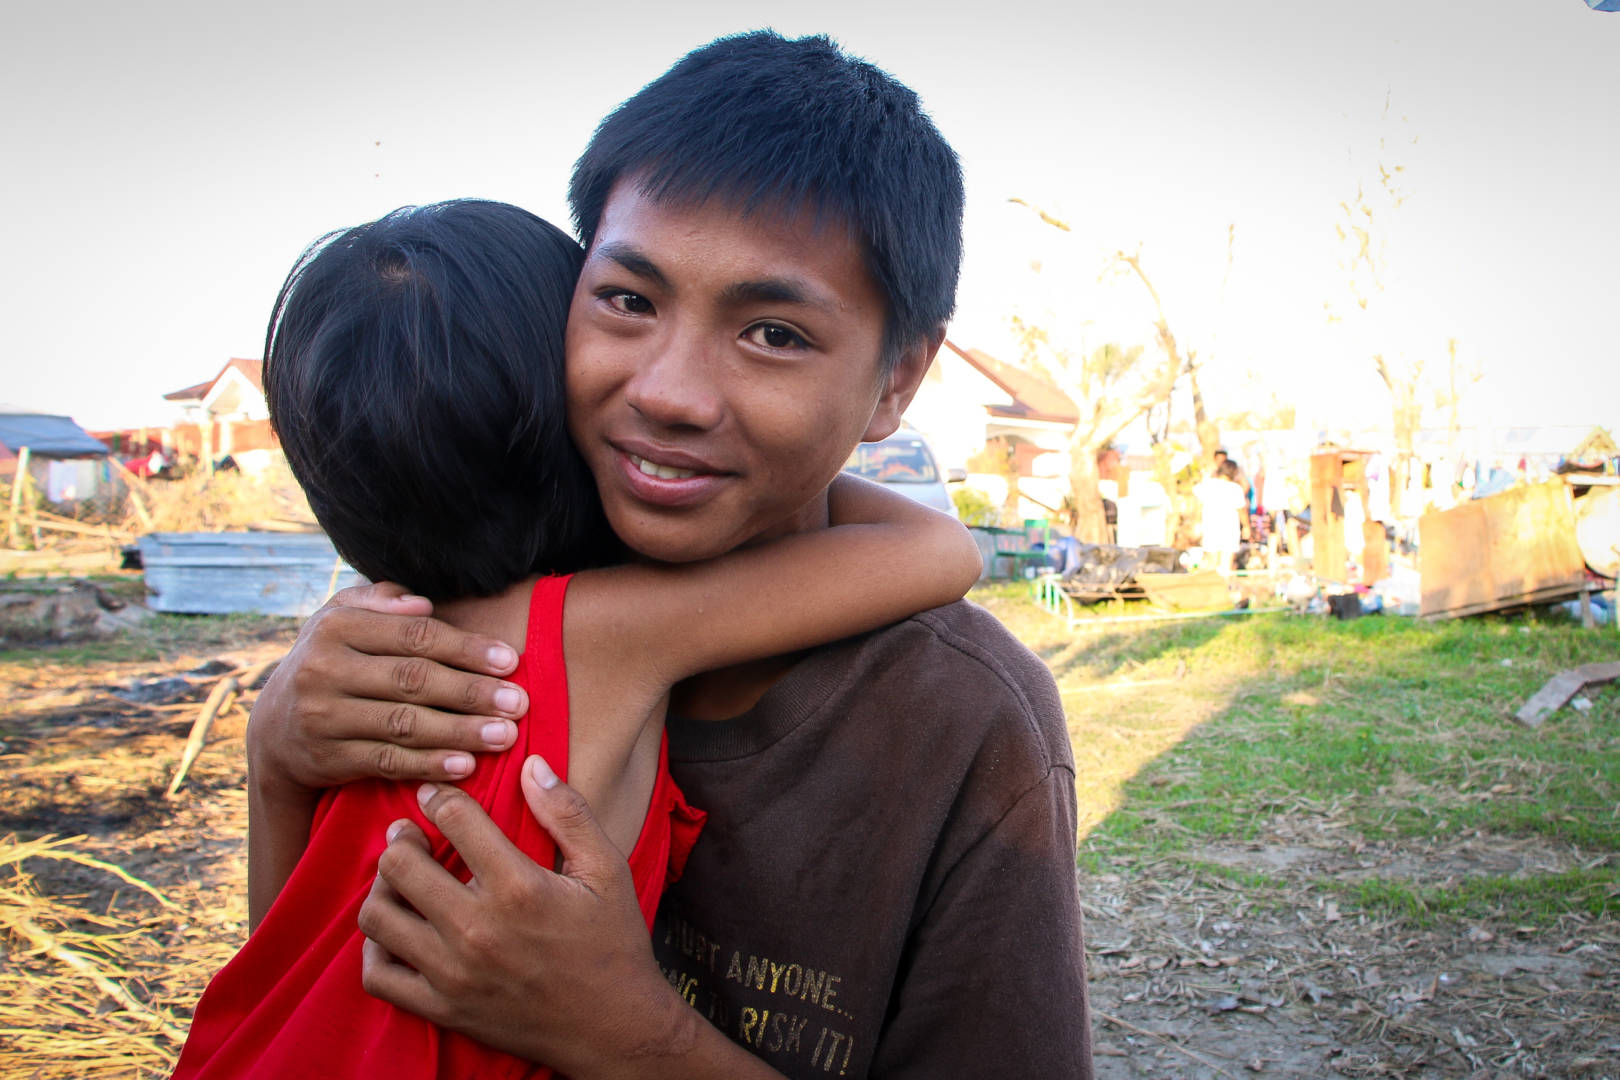 Standing near his home in the Philippines that was destroyed by Typhoon Haima in October 2016, Santiago holds his 4-year-old sister Princess. (©2016 World Vision, photo by Joy Malujo)